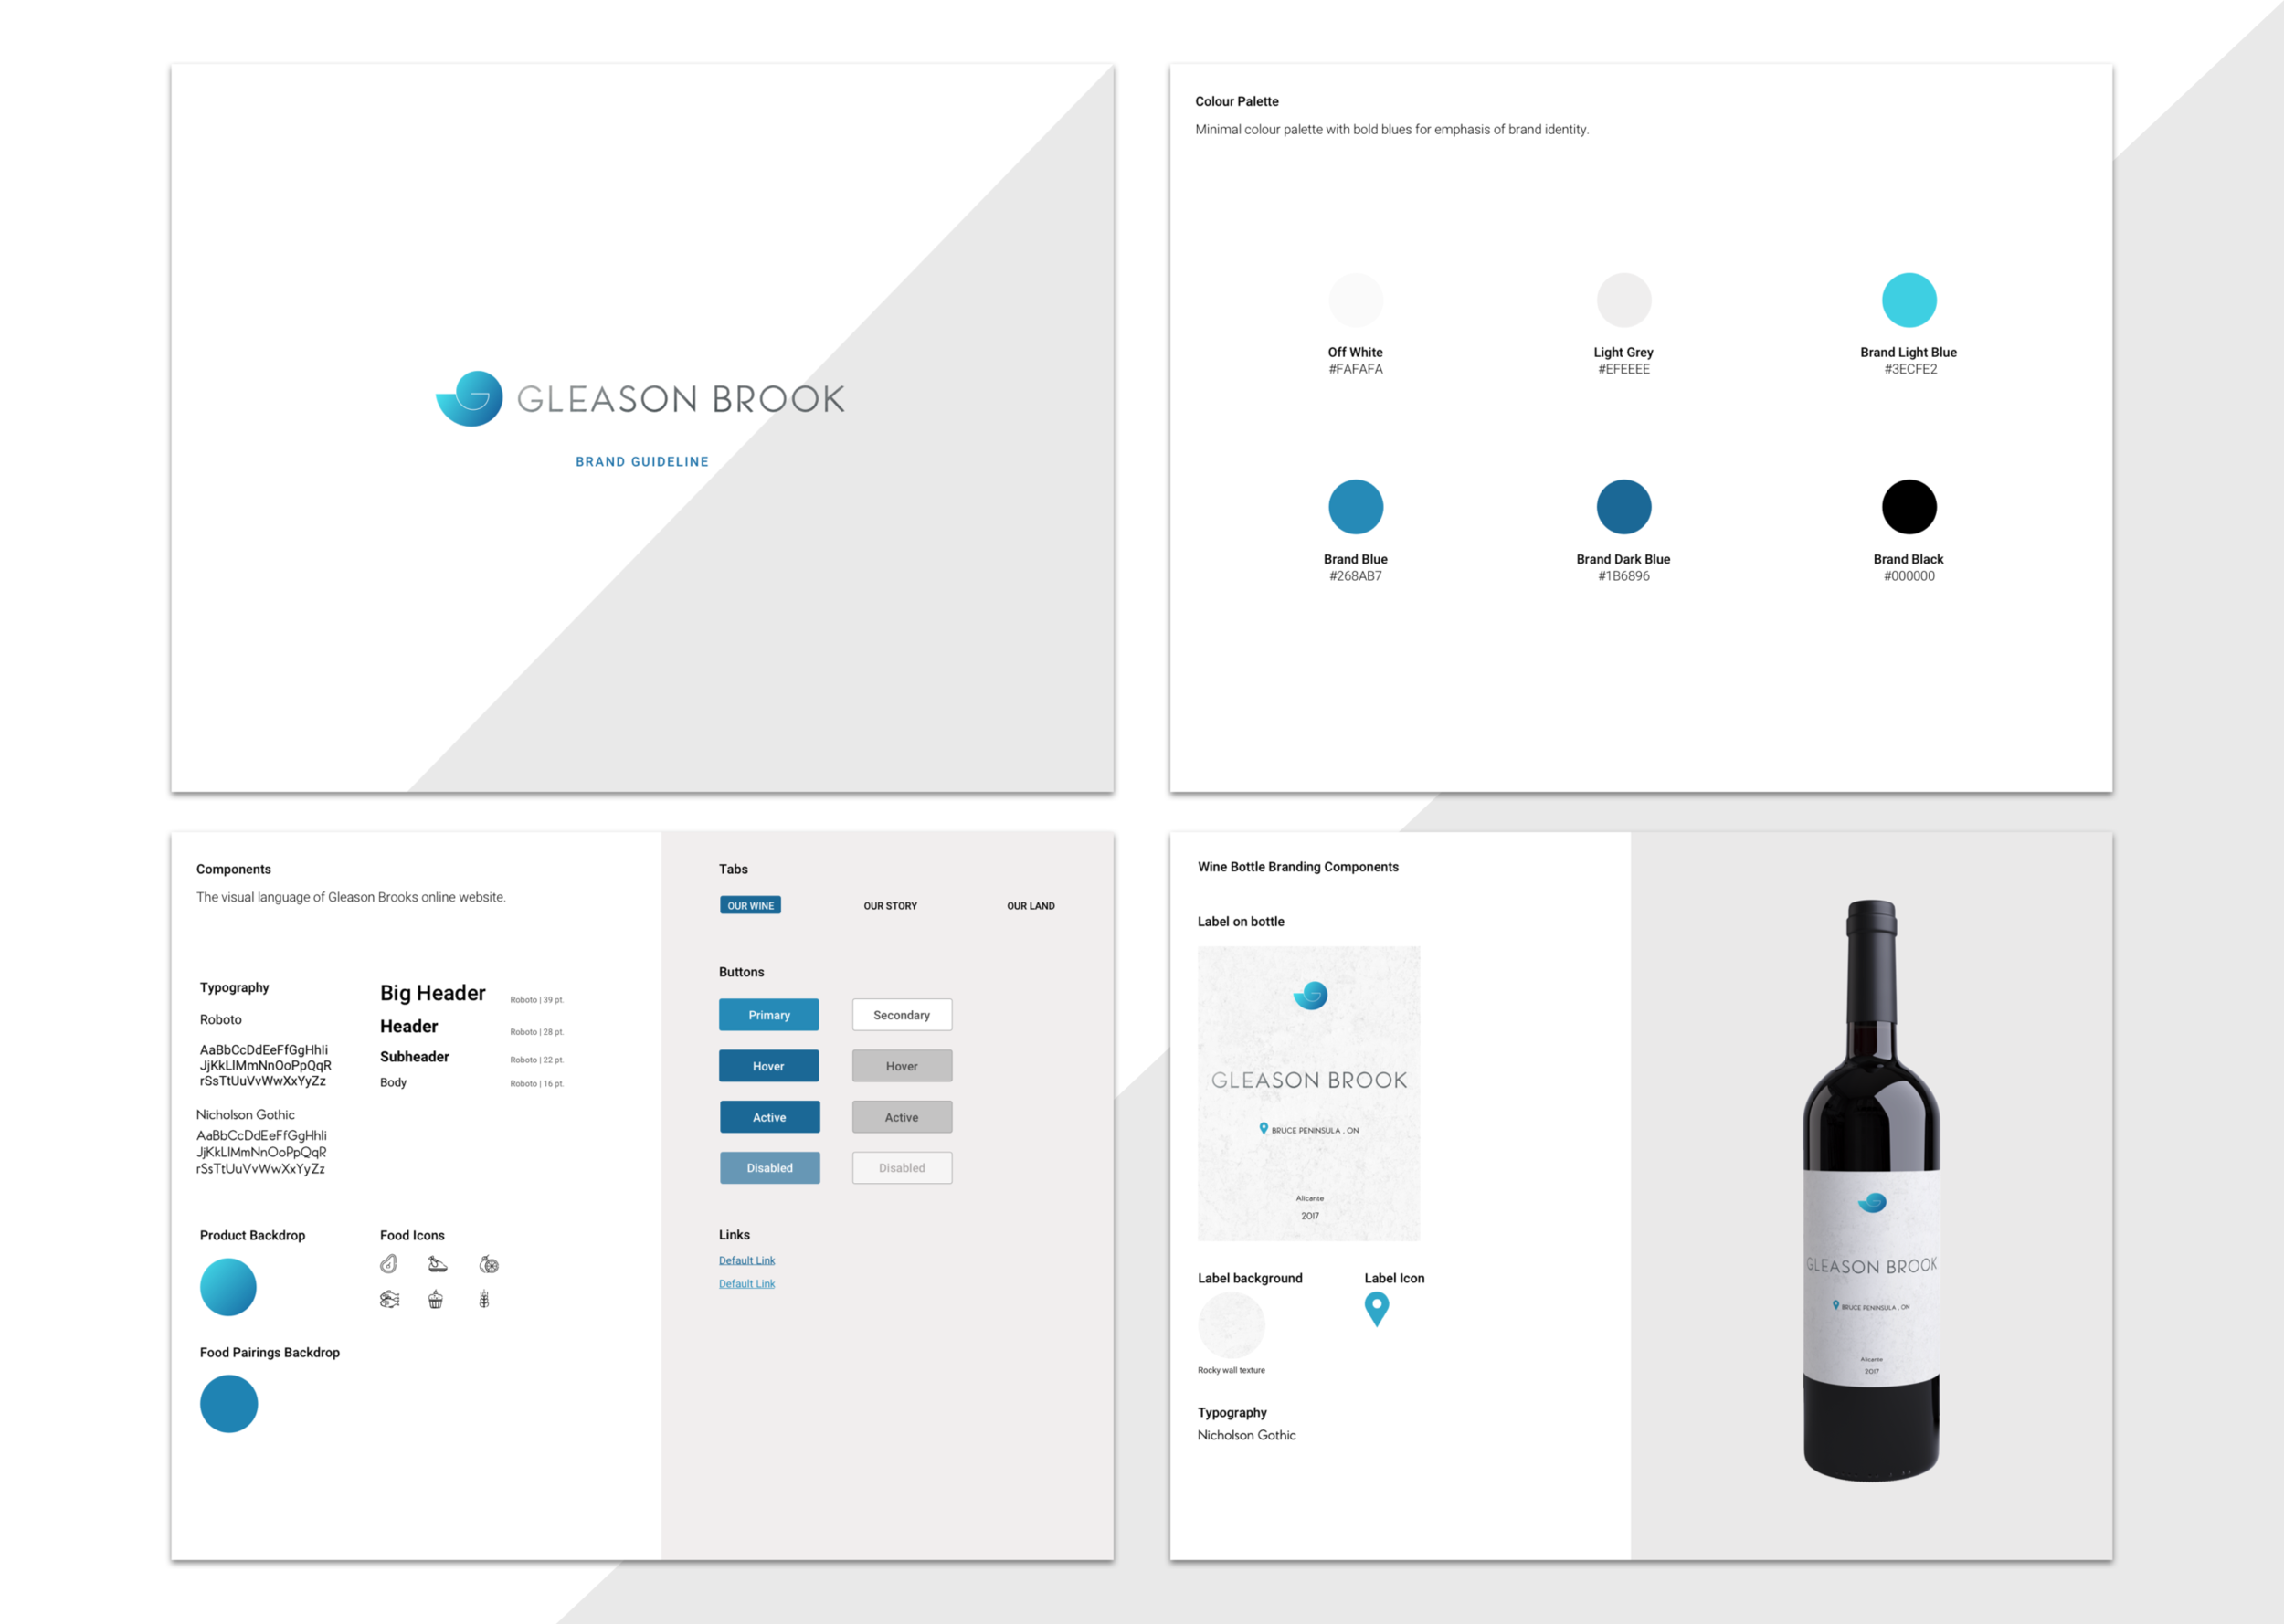 A Sample of the Branding Guideline